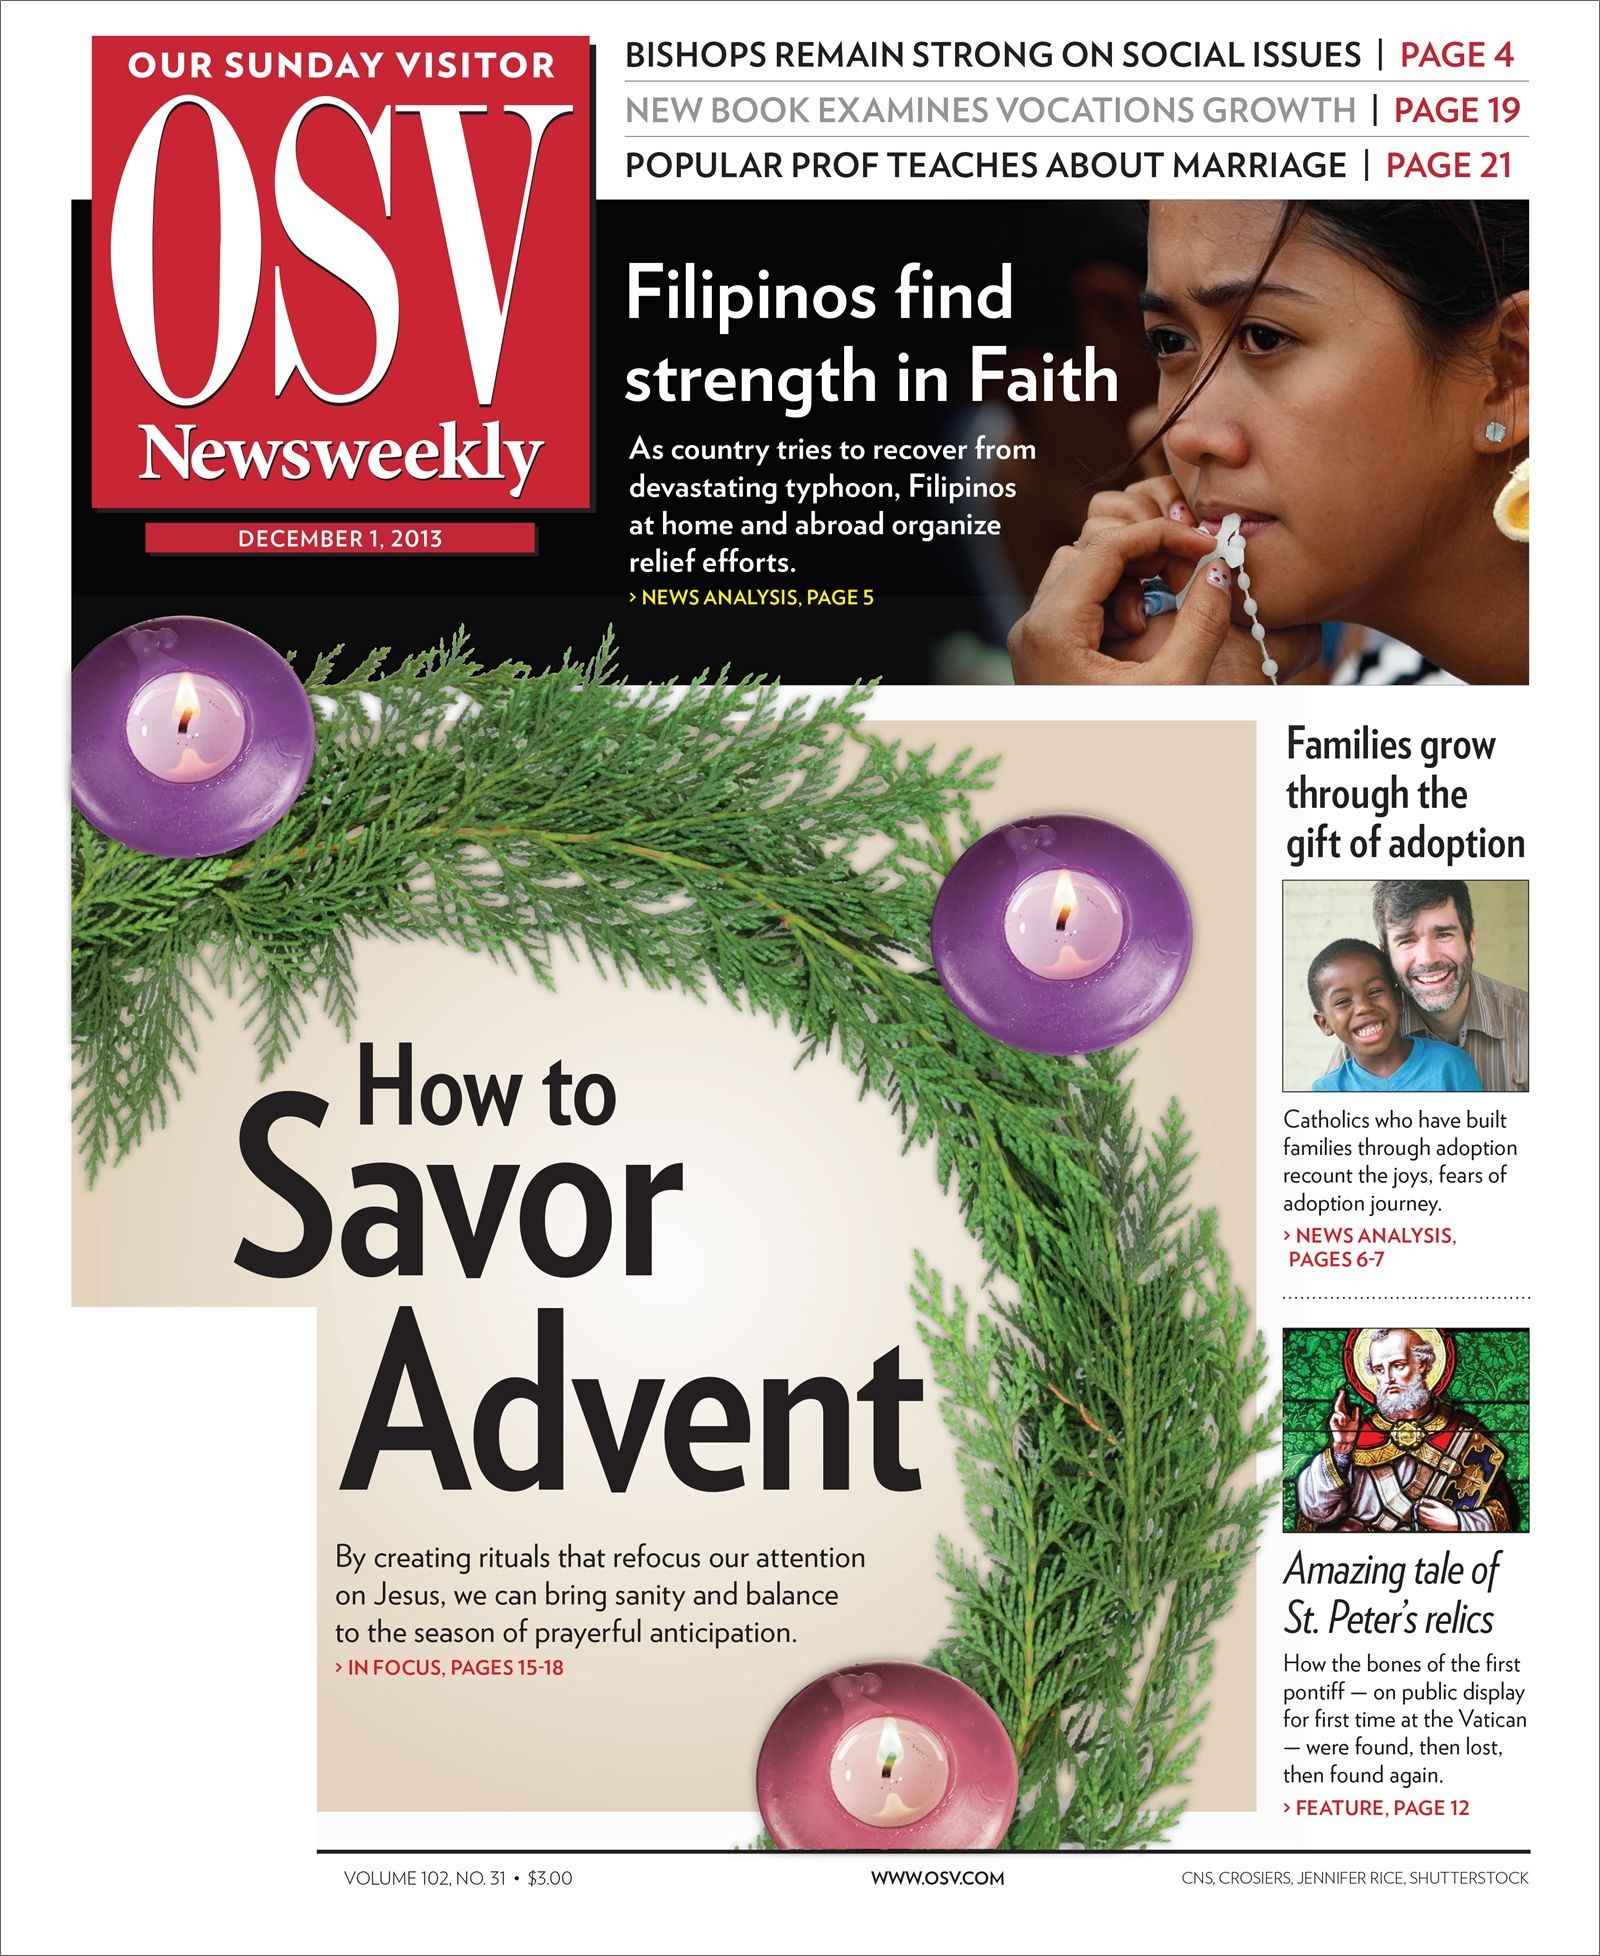 December 1, 2013, issue of OSV Newsweekly.